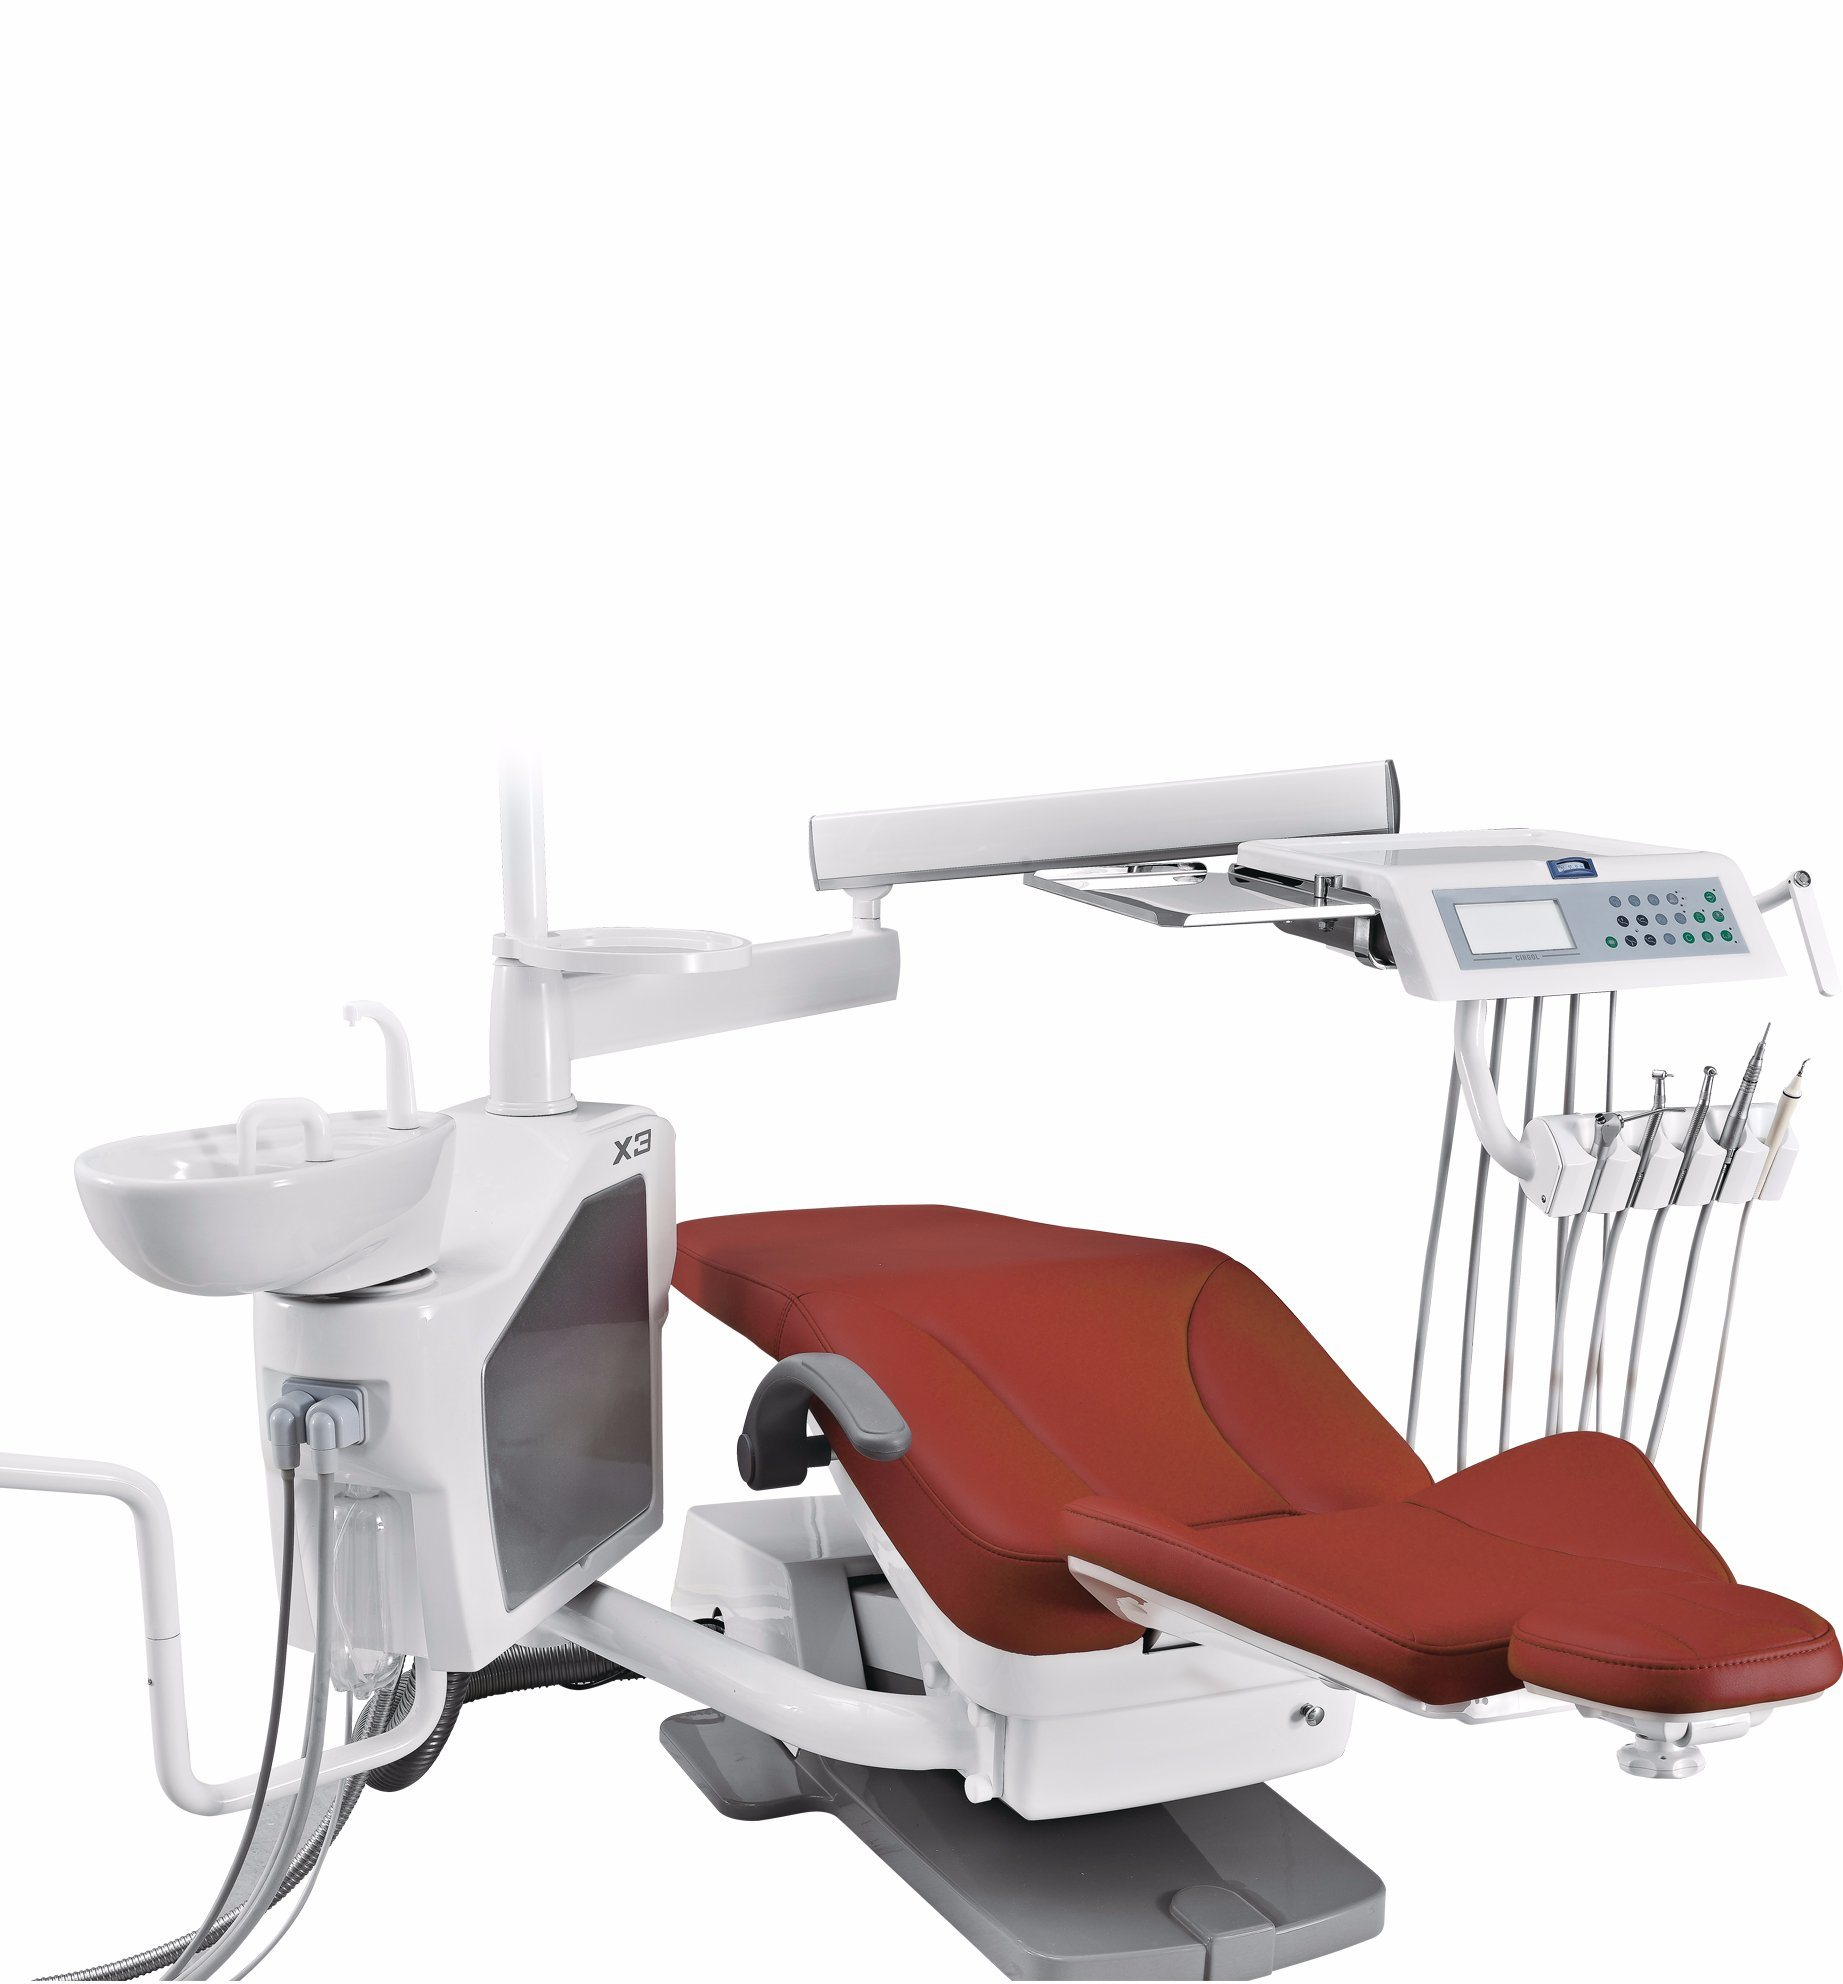 X3+ Dental Unit with Hot Water in Handpiece Tubing